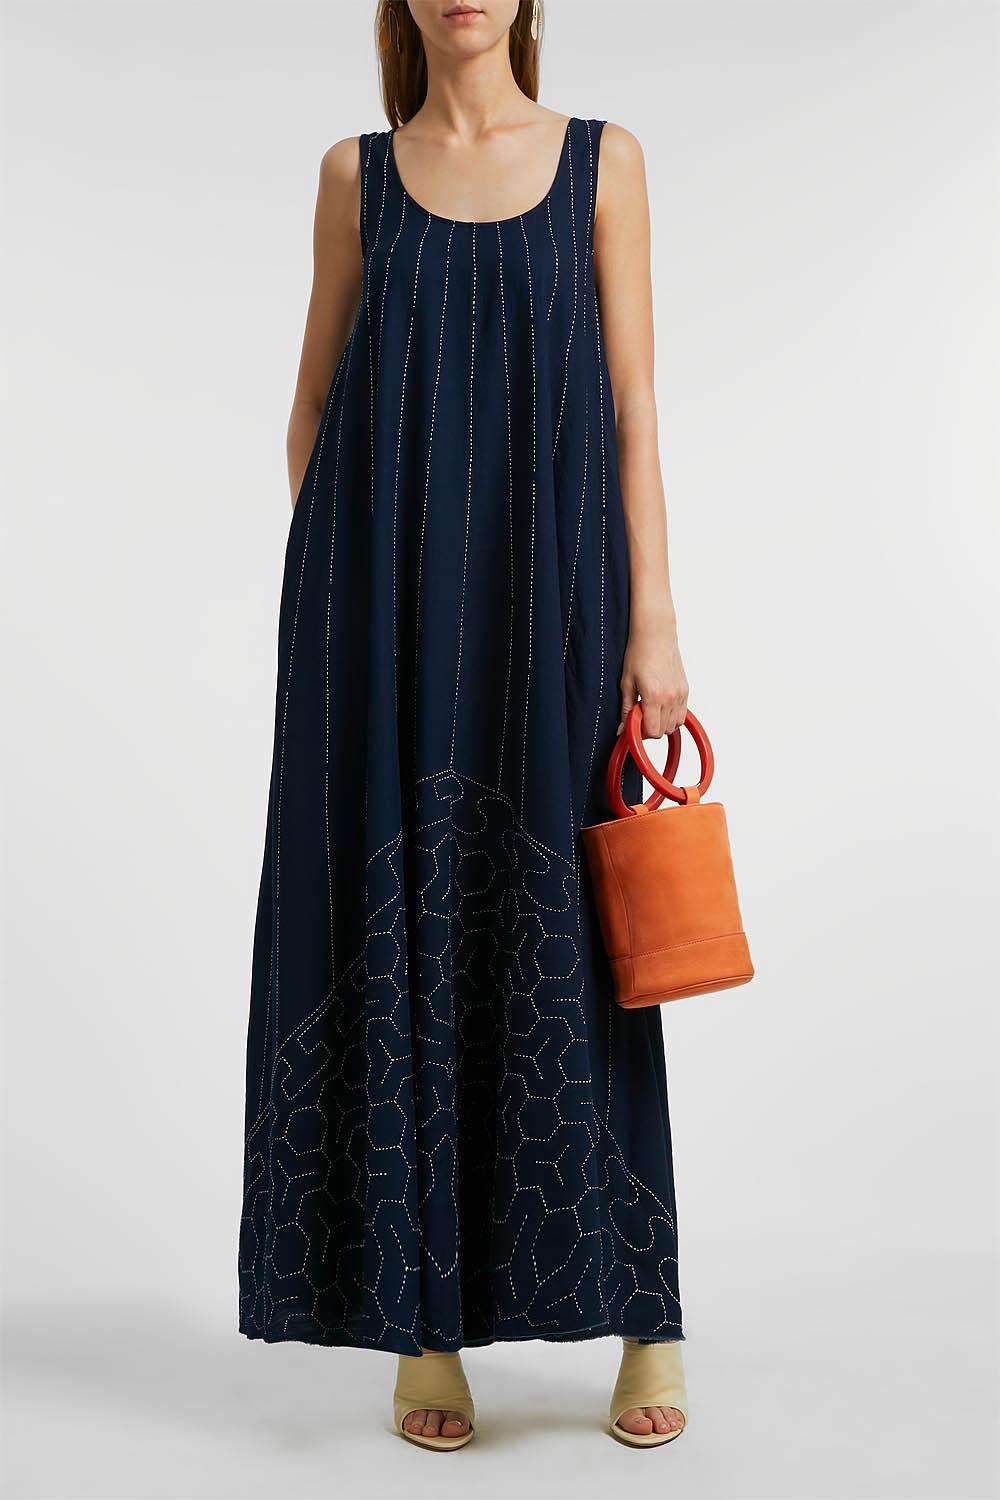 a7cf5546f39 Lyst - Elizabeth and James Oasis Embroidered Cotton Maxi Dress in Blue